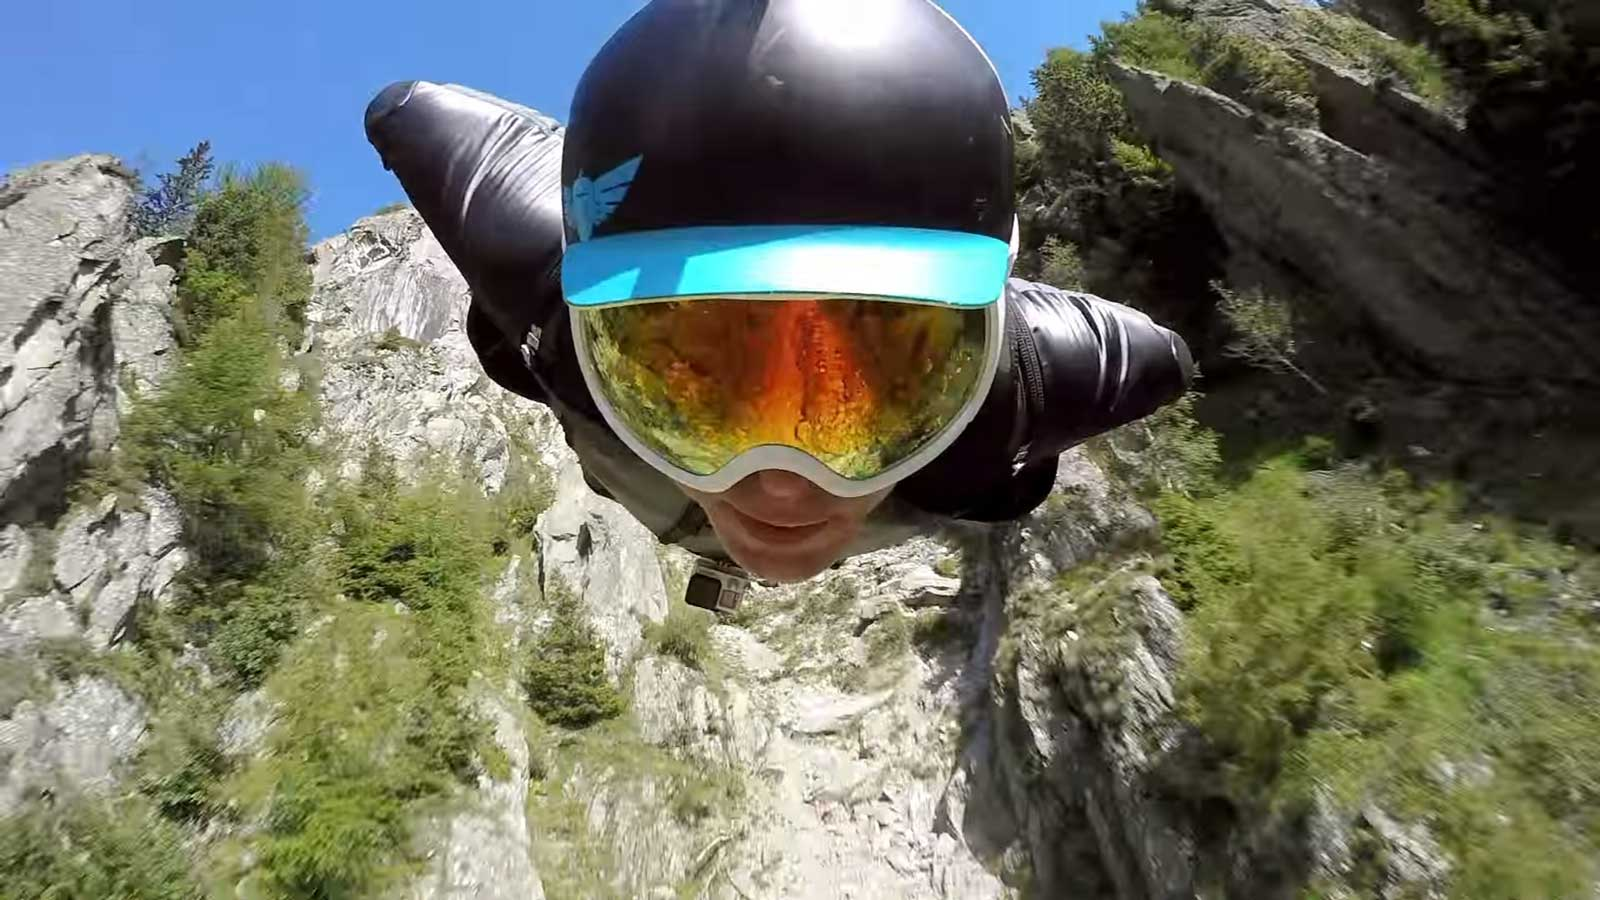 Chamonix bans wingsuit flying after further fatalities